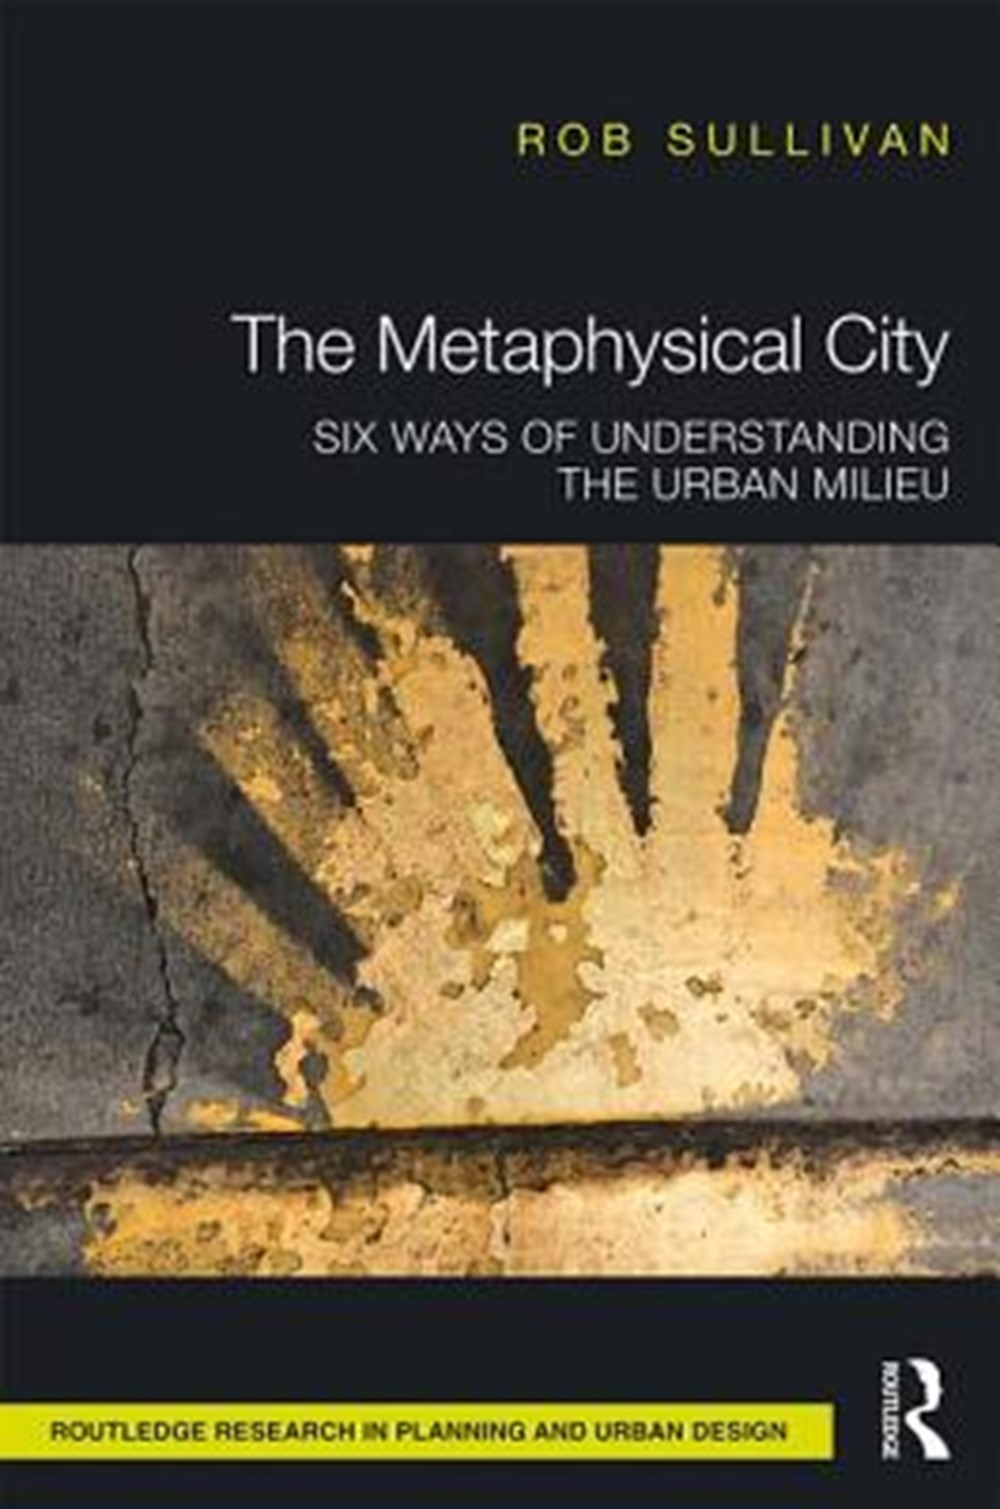 Metaphysical City Six Ways of Understanding the Urban Milieu